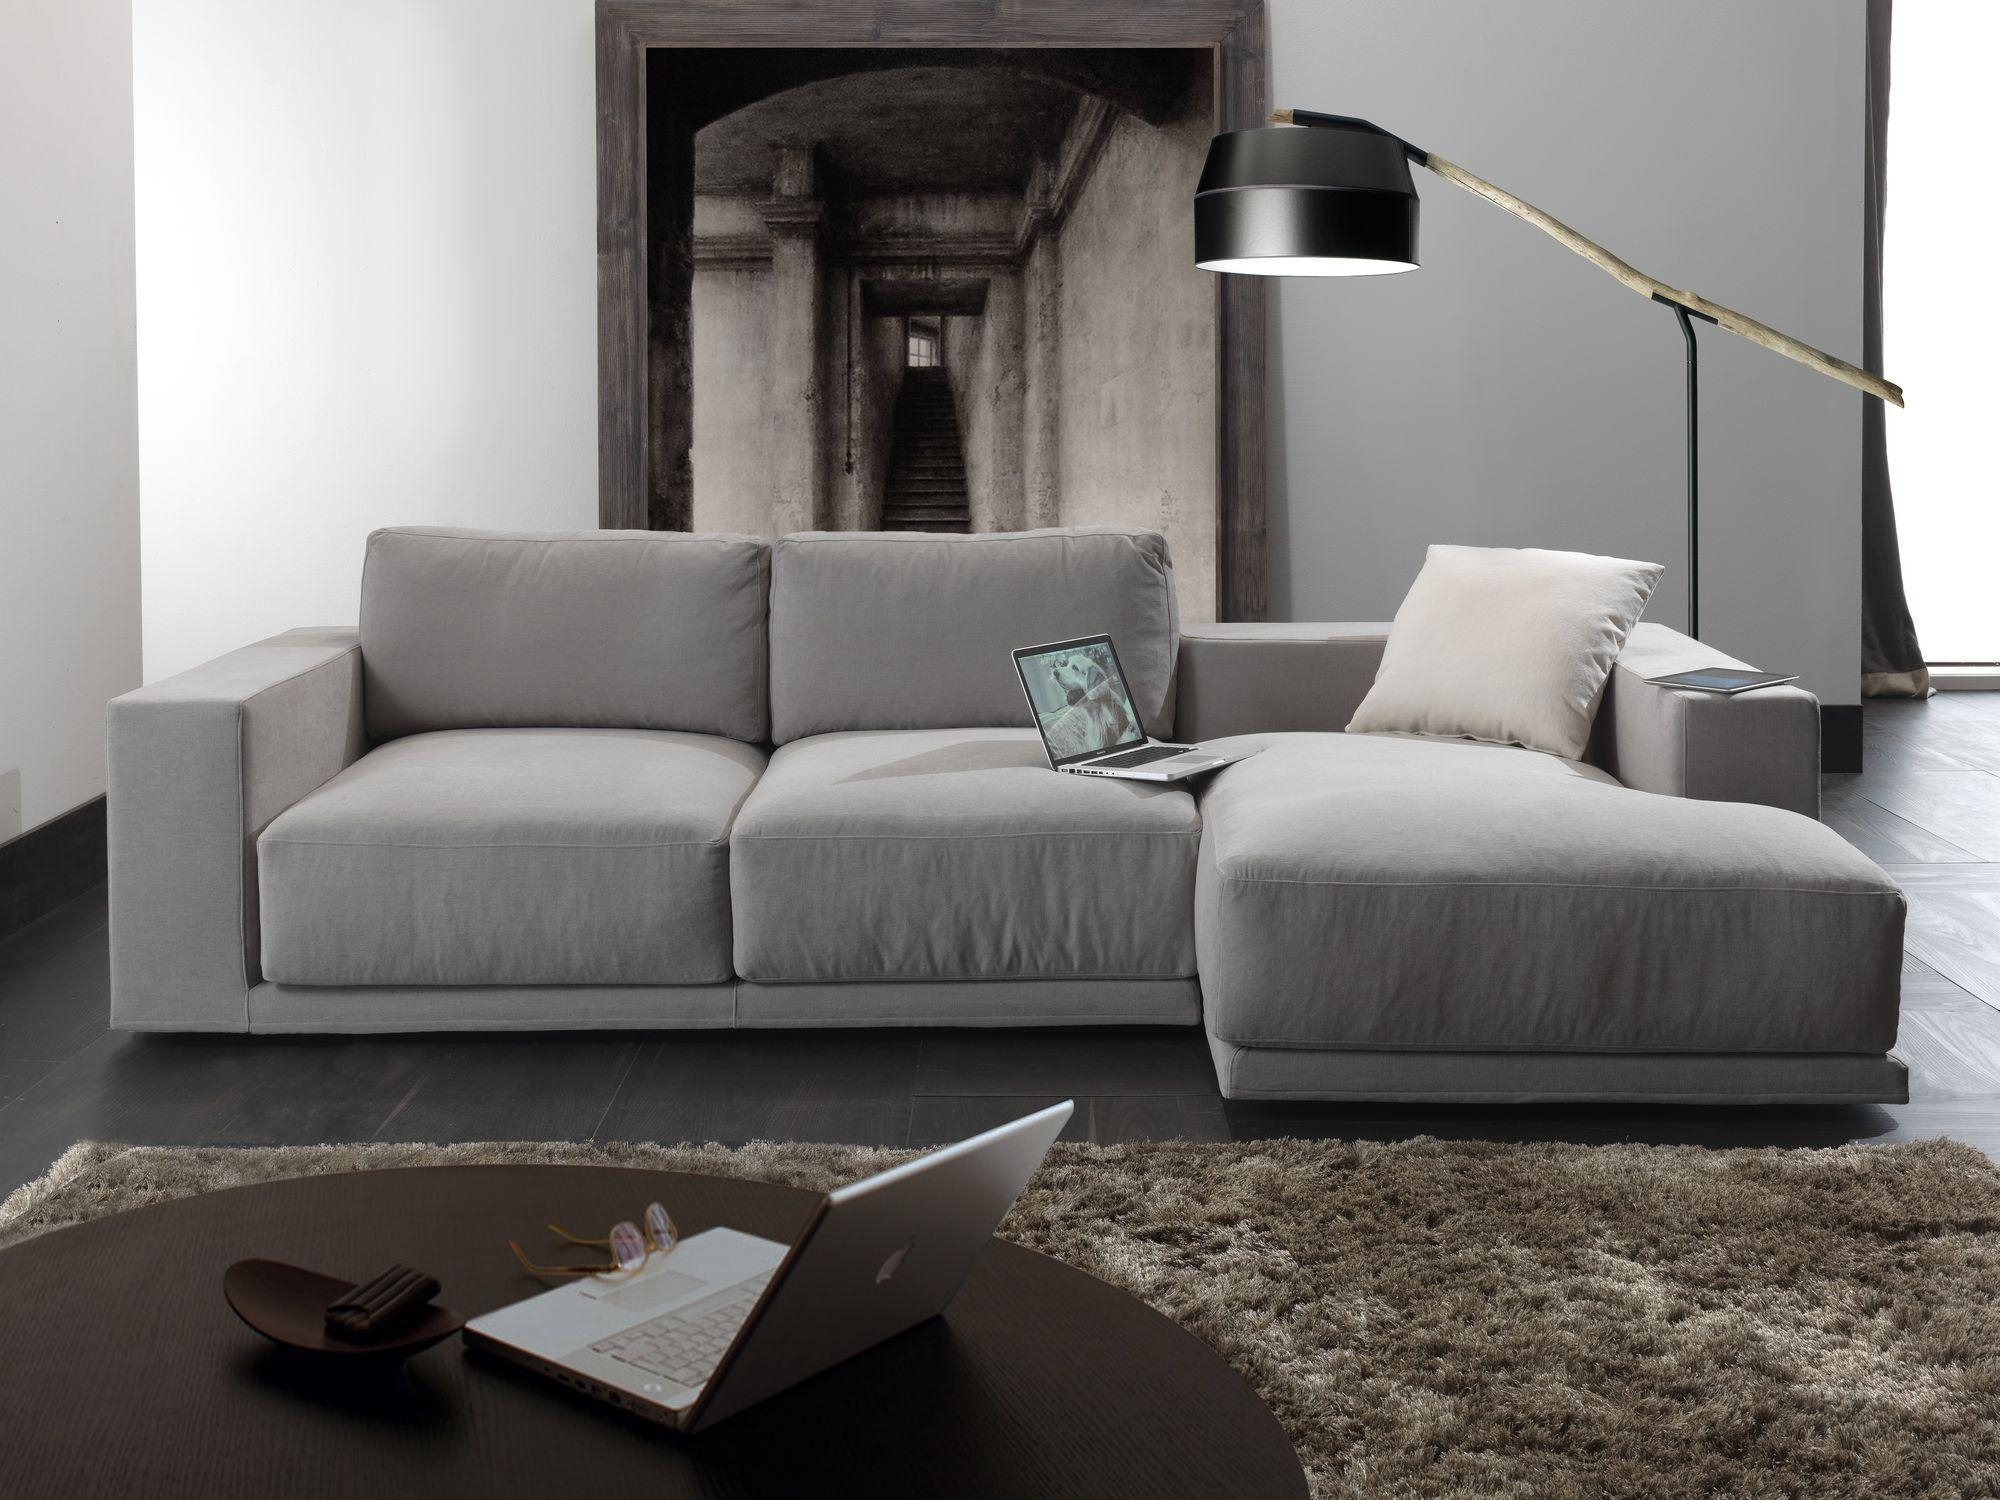 Modular Sofa / Contemporary / Fabric / 3 Seater – Relax Square Intended For Contemporary Fabric Sofas (Image 17 of 20)